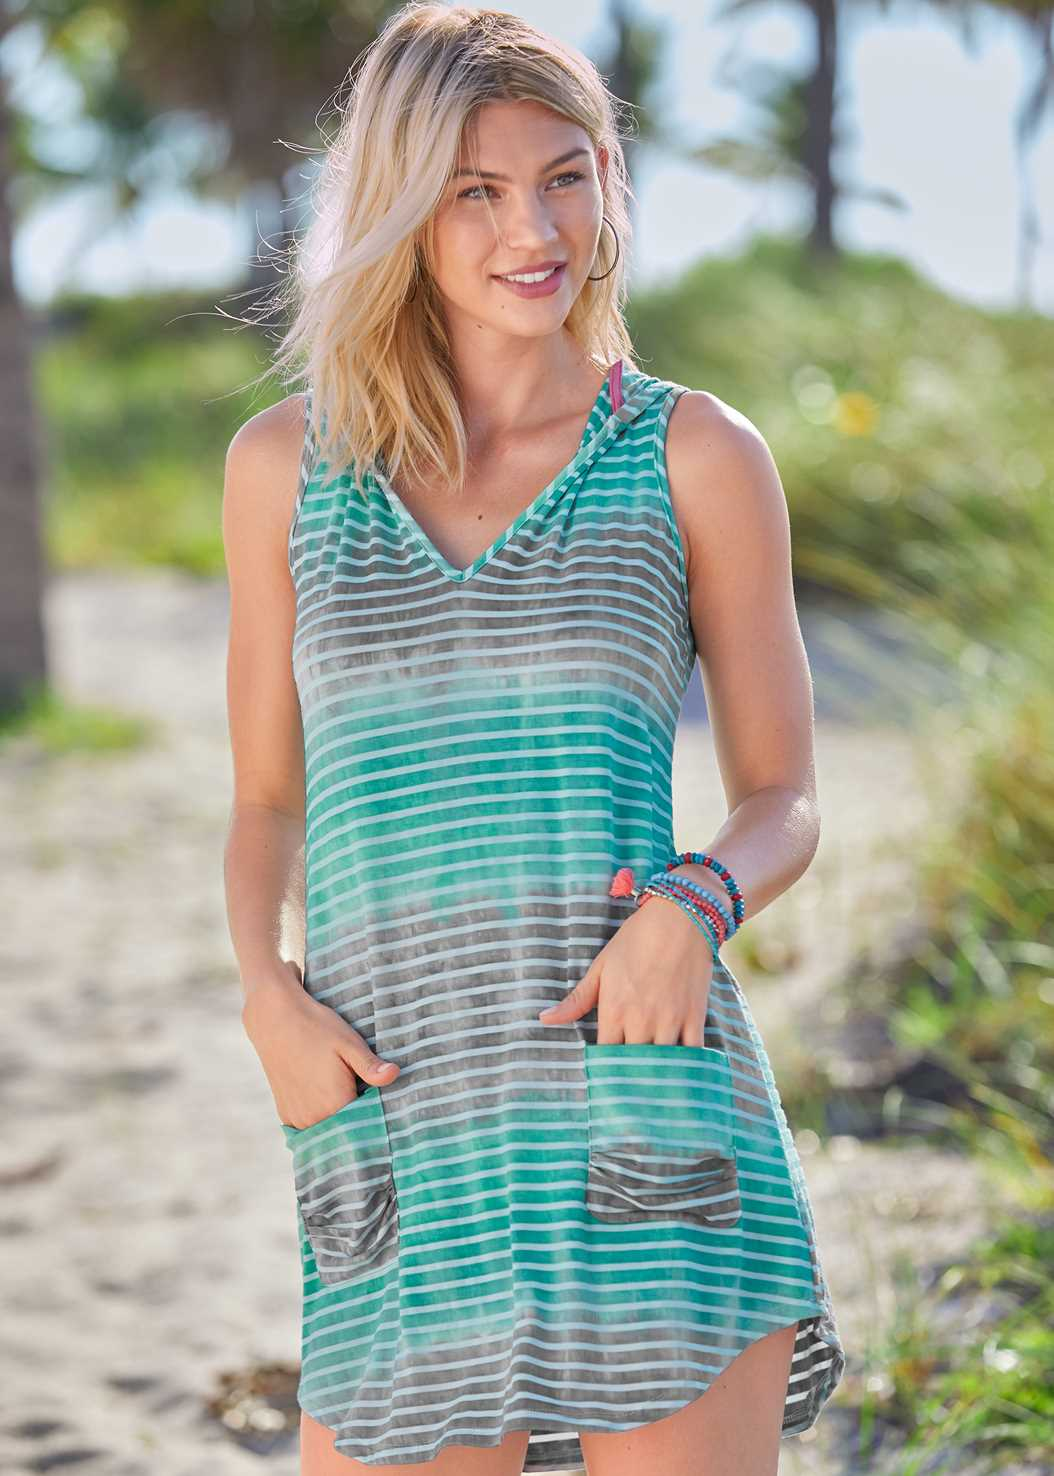 Hooded Pocket Cover-Up,Marilyn Underwire Push Up Halter Top,Scoop Front Classic Bikini Bottom ,Low Rise Classic Bikini Bottom